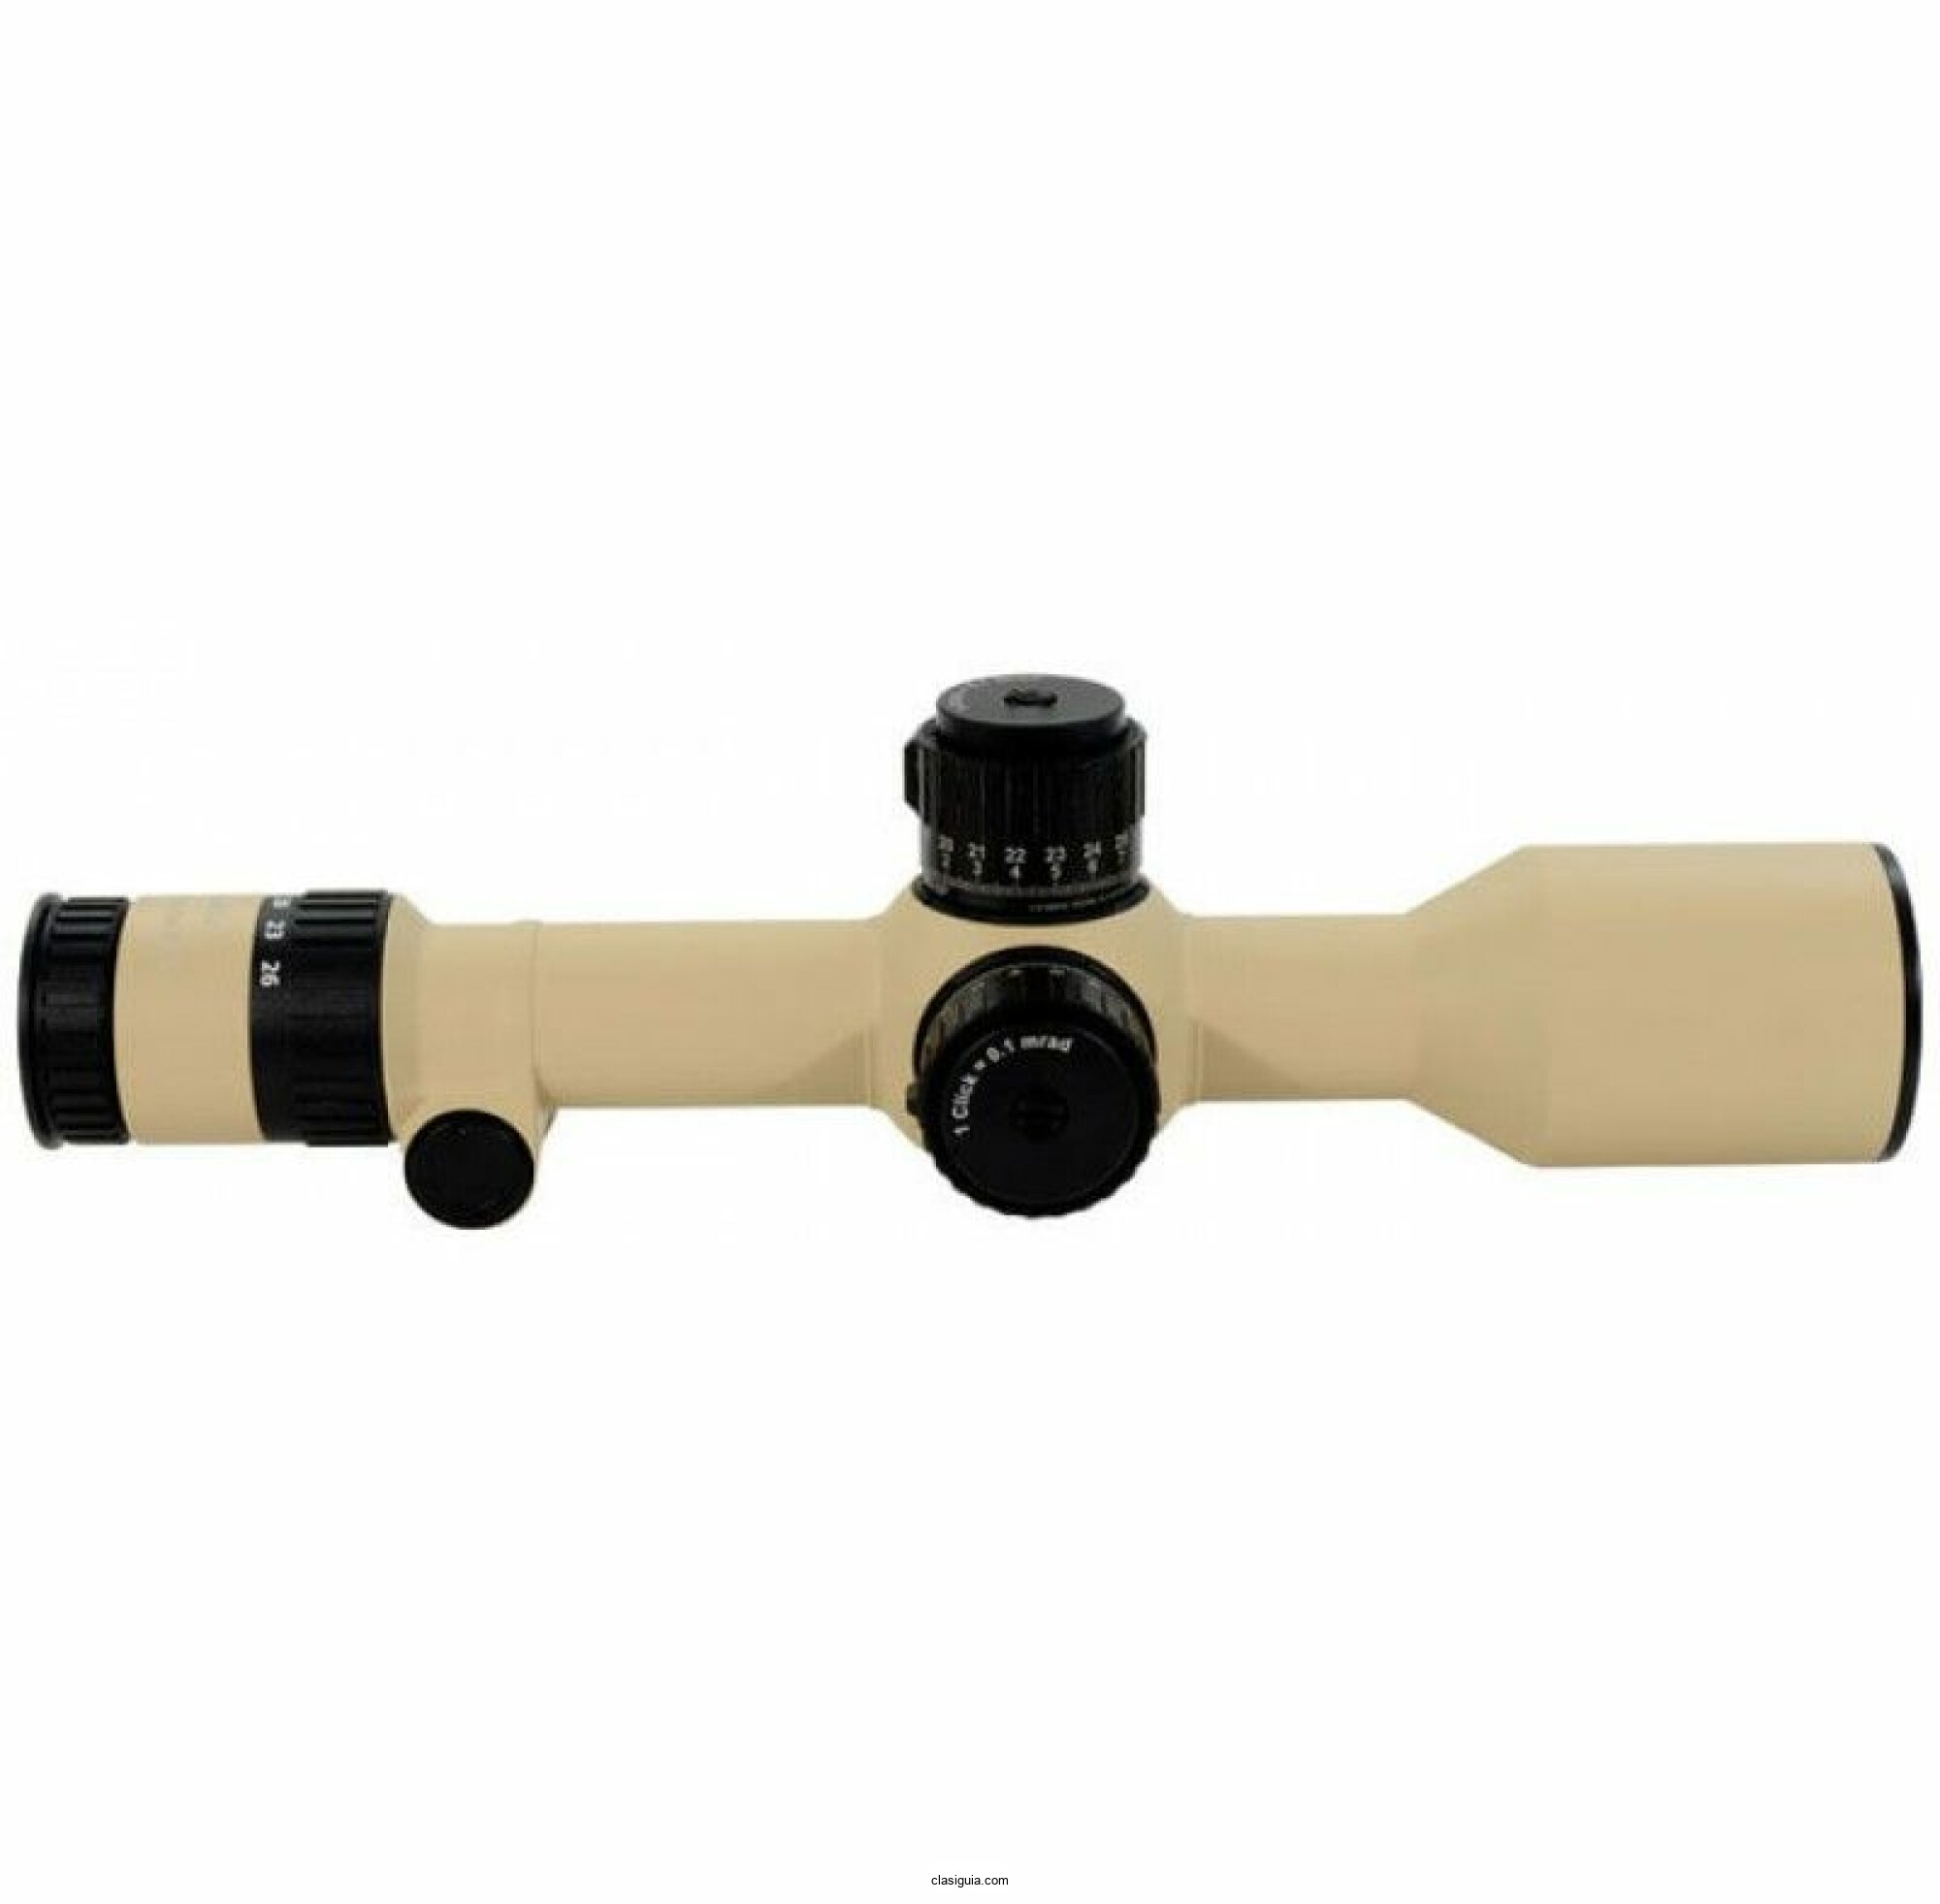 HENSOLDT ZF 3.5-26X56 SAND RIFLESCOPE - (NEW AND ORIGINAL INDOOPTICS PRODUCTS)